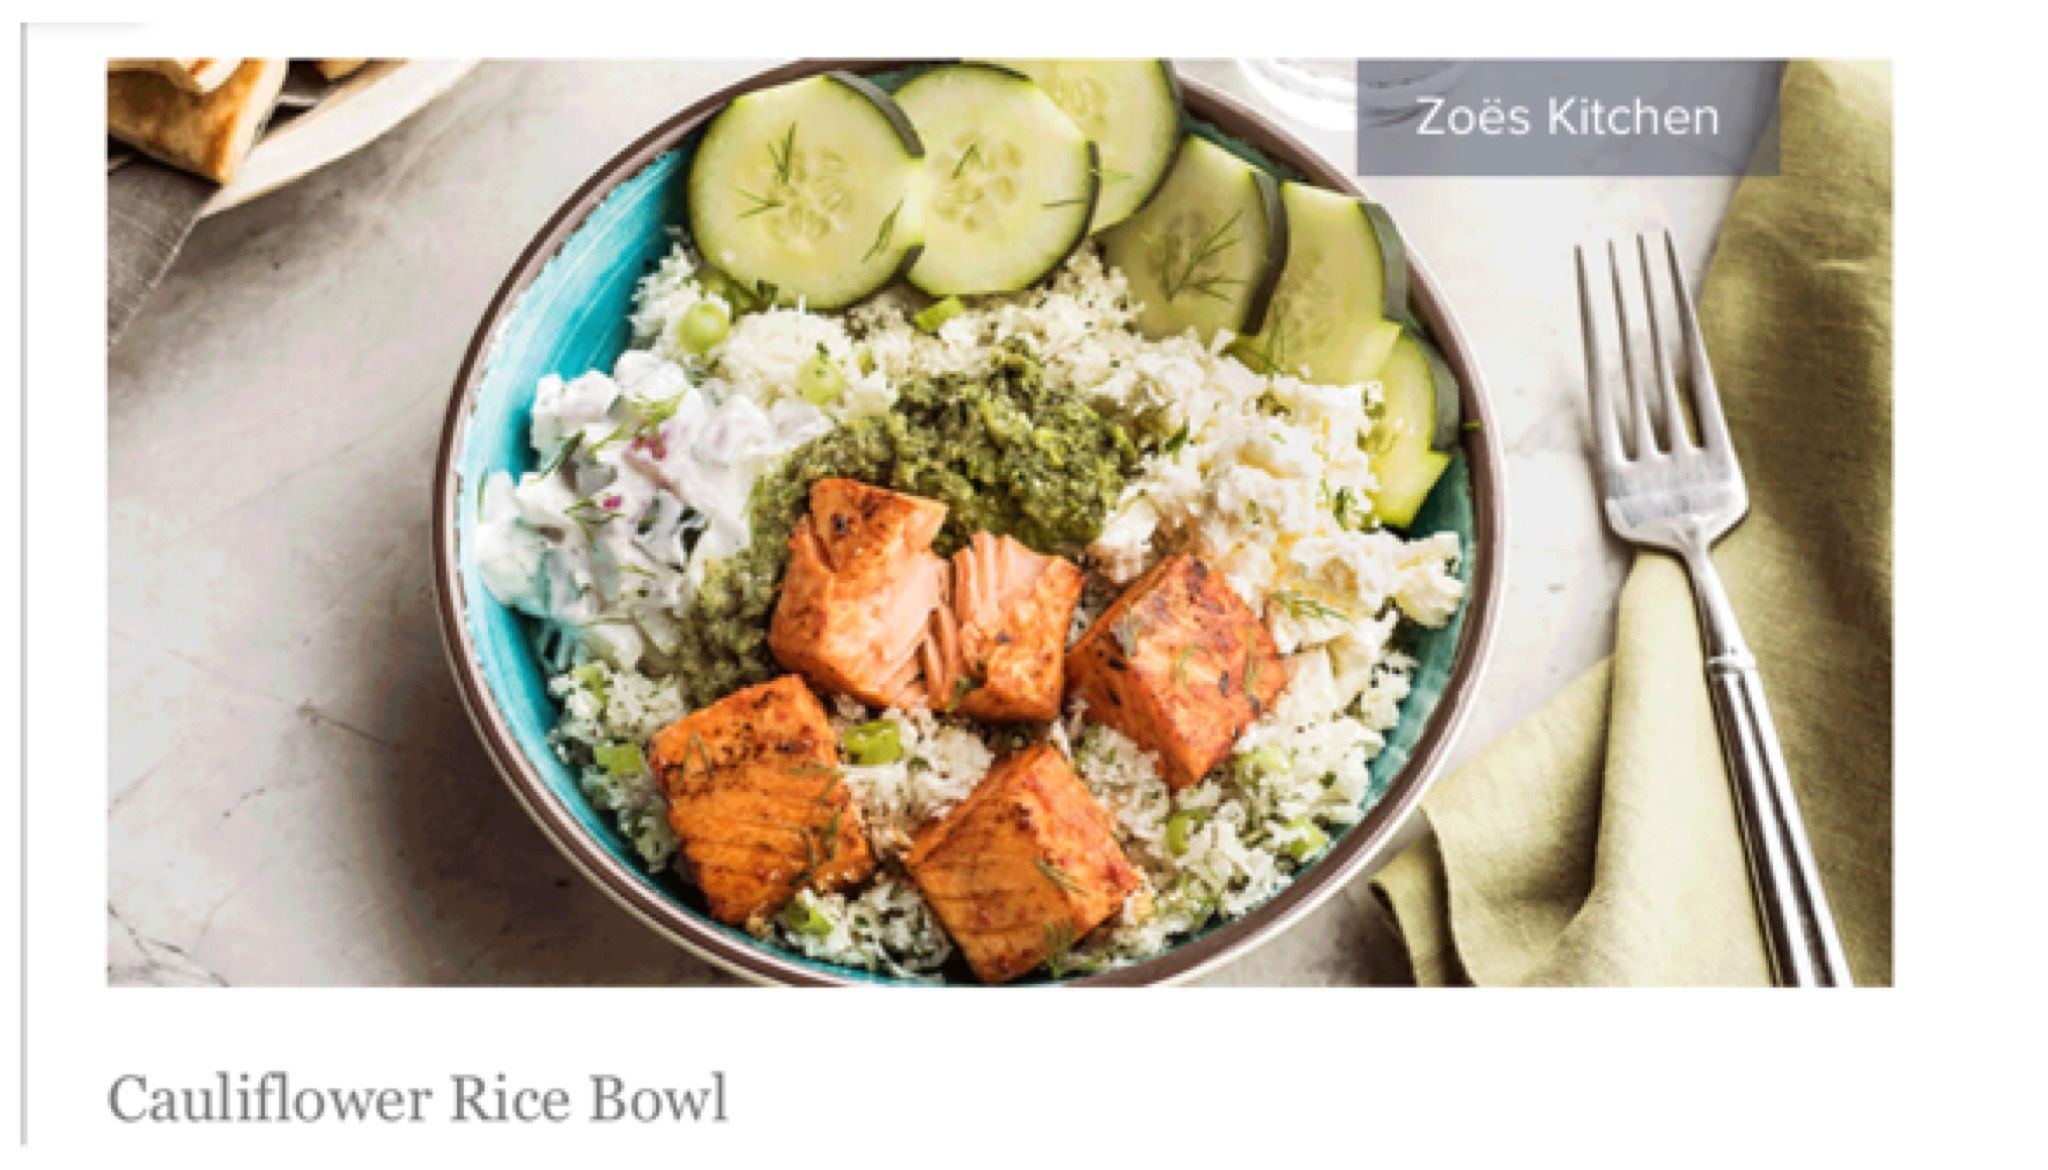 Cauliflower Rice Bowl Can Order With Salmon Chicken Beef